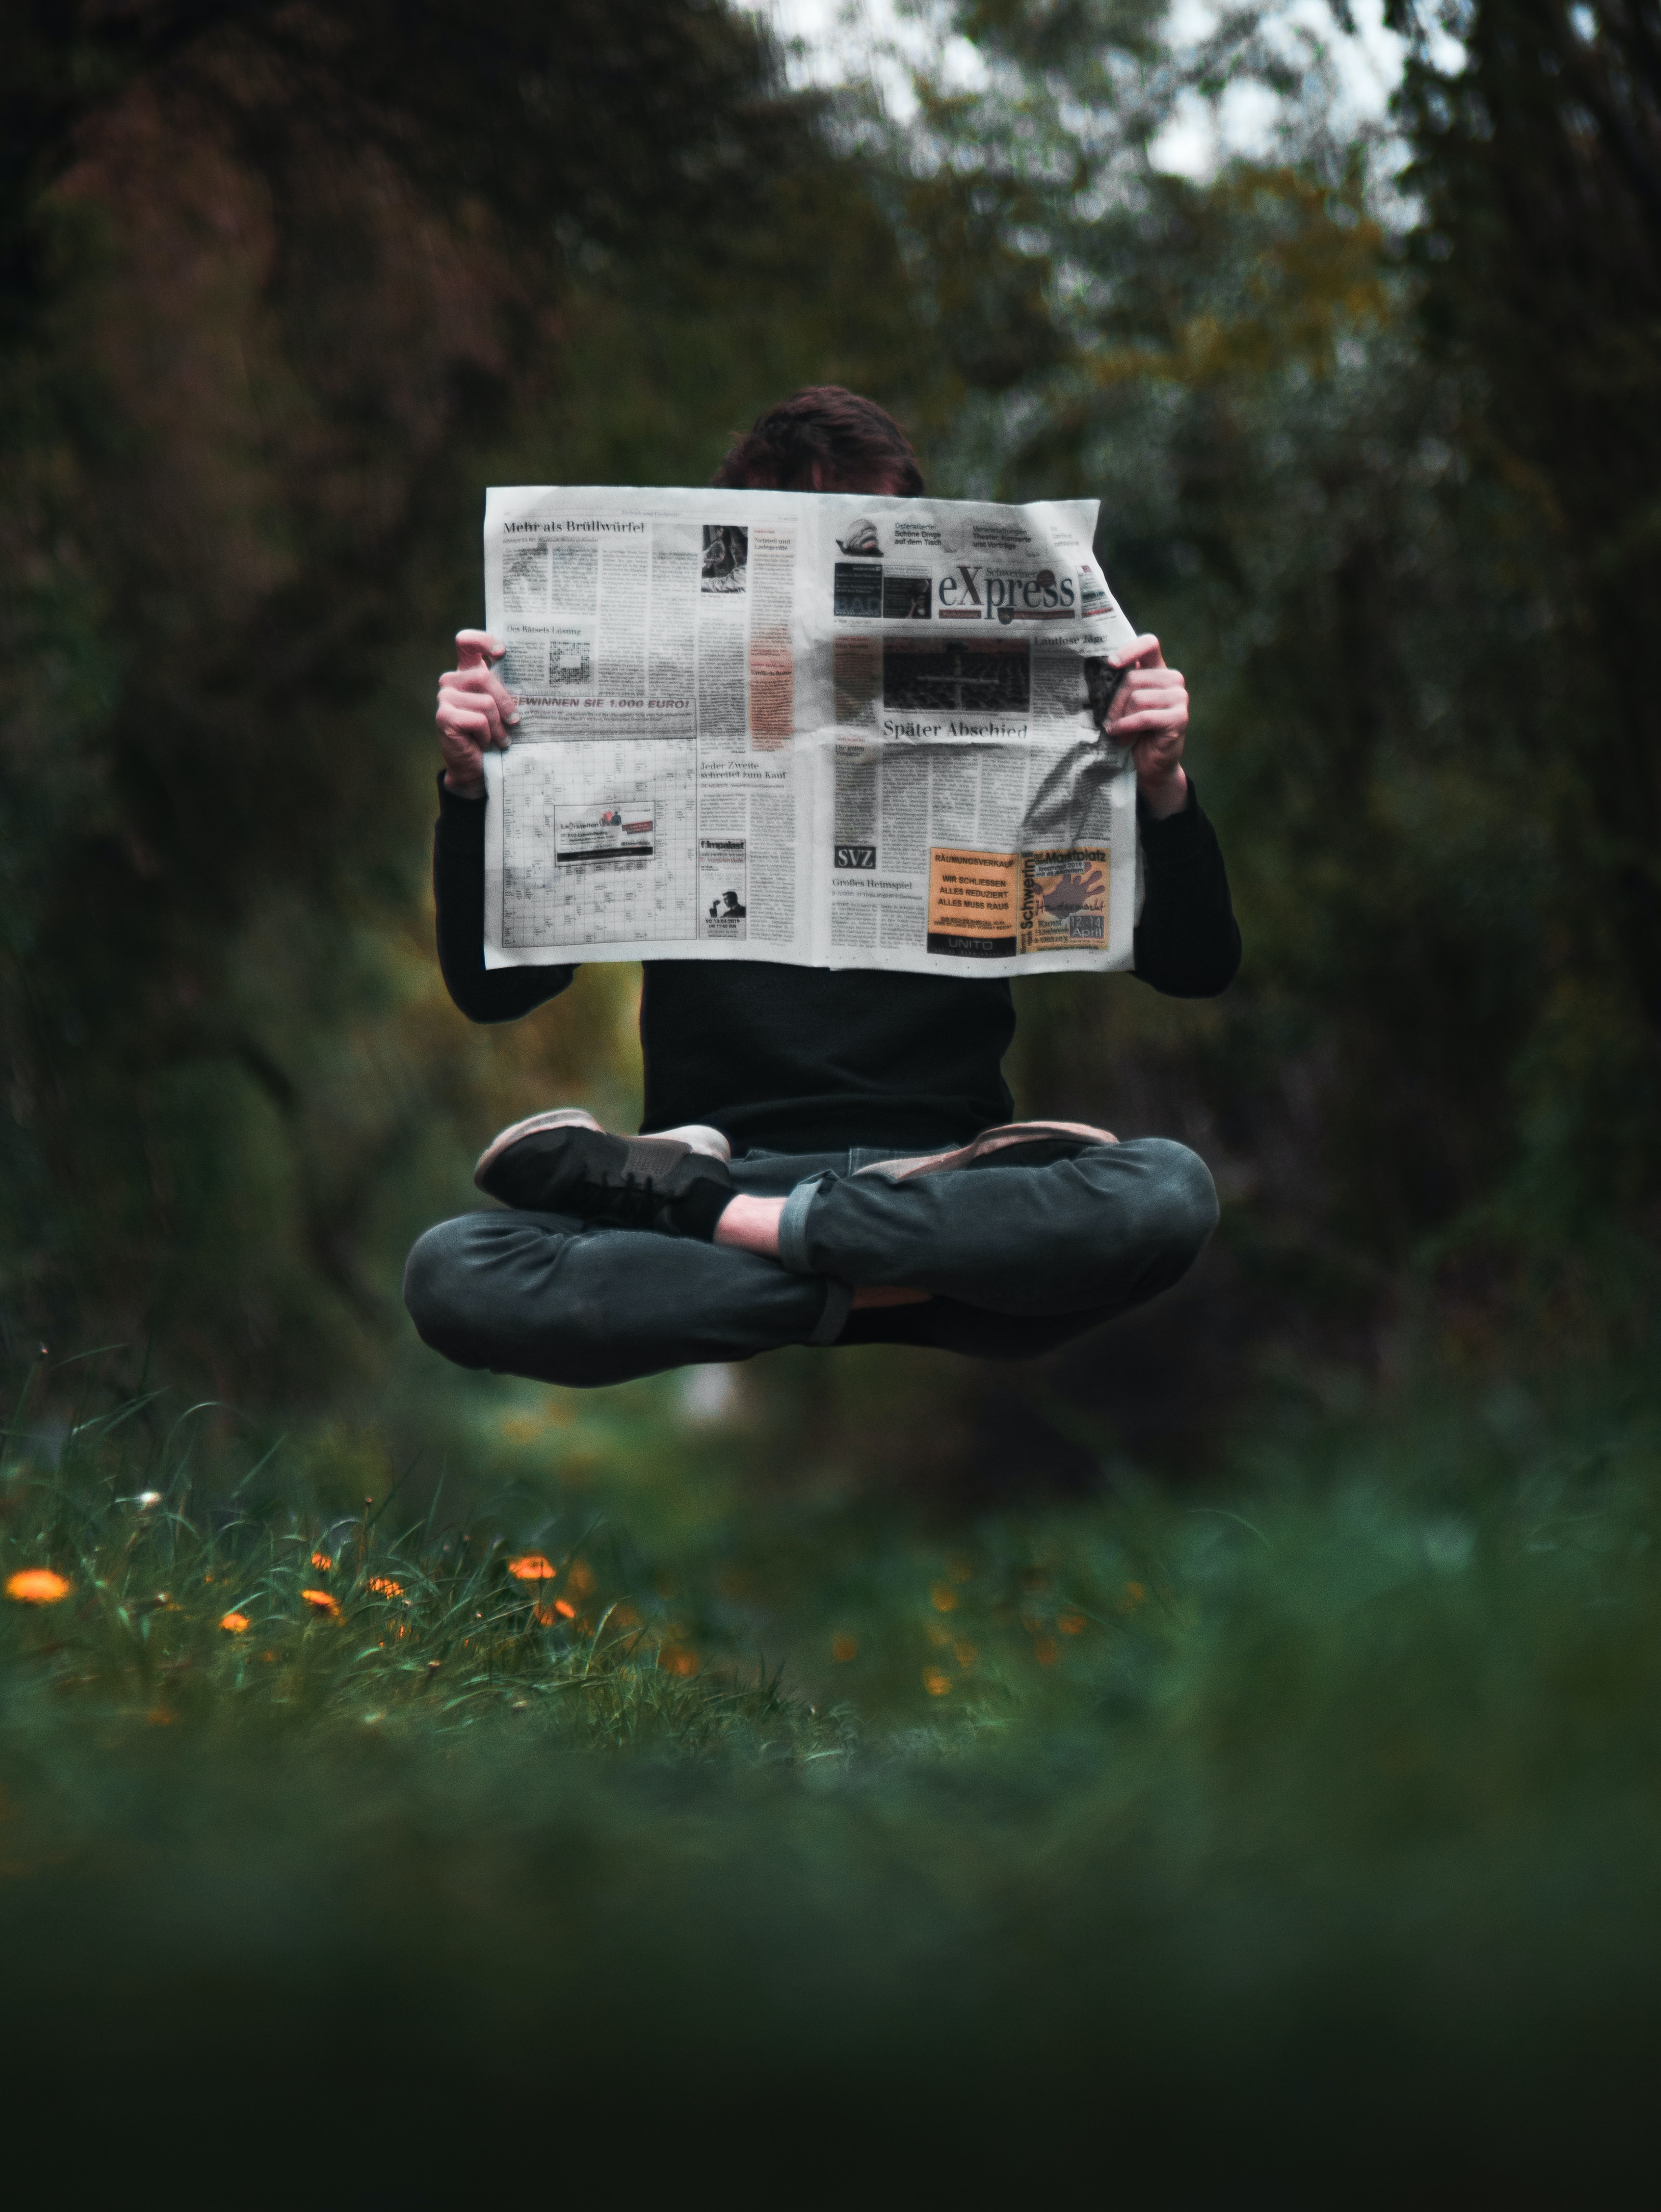 Photo of a cross-legged person reading a newspaper while levitating